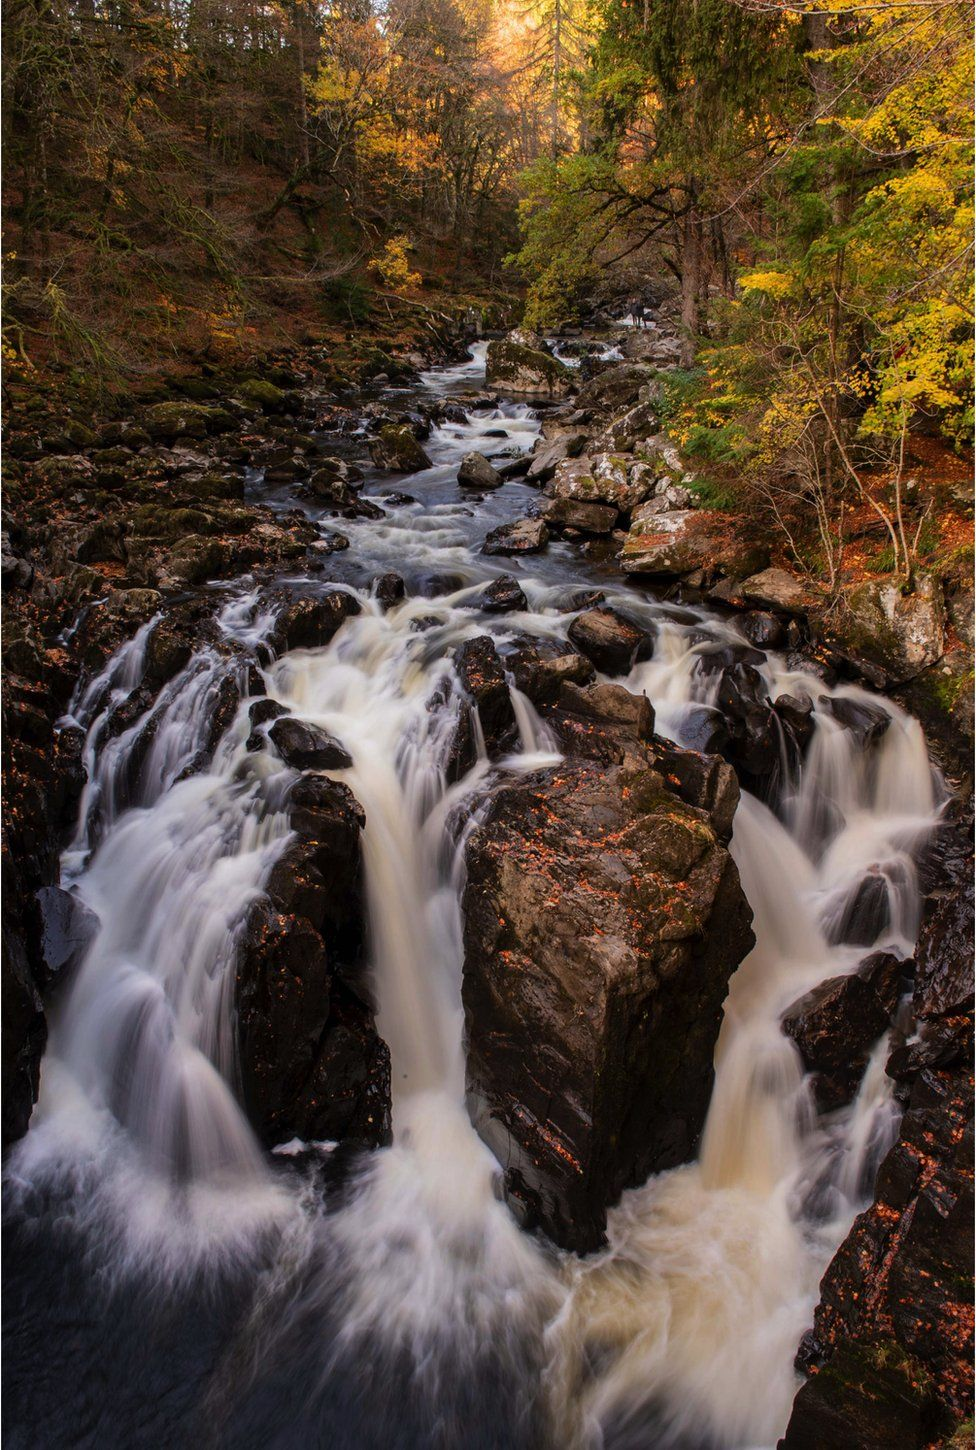 Stream at the Hermitage in Dunkeld